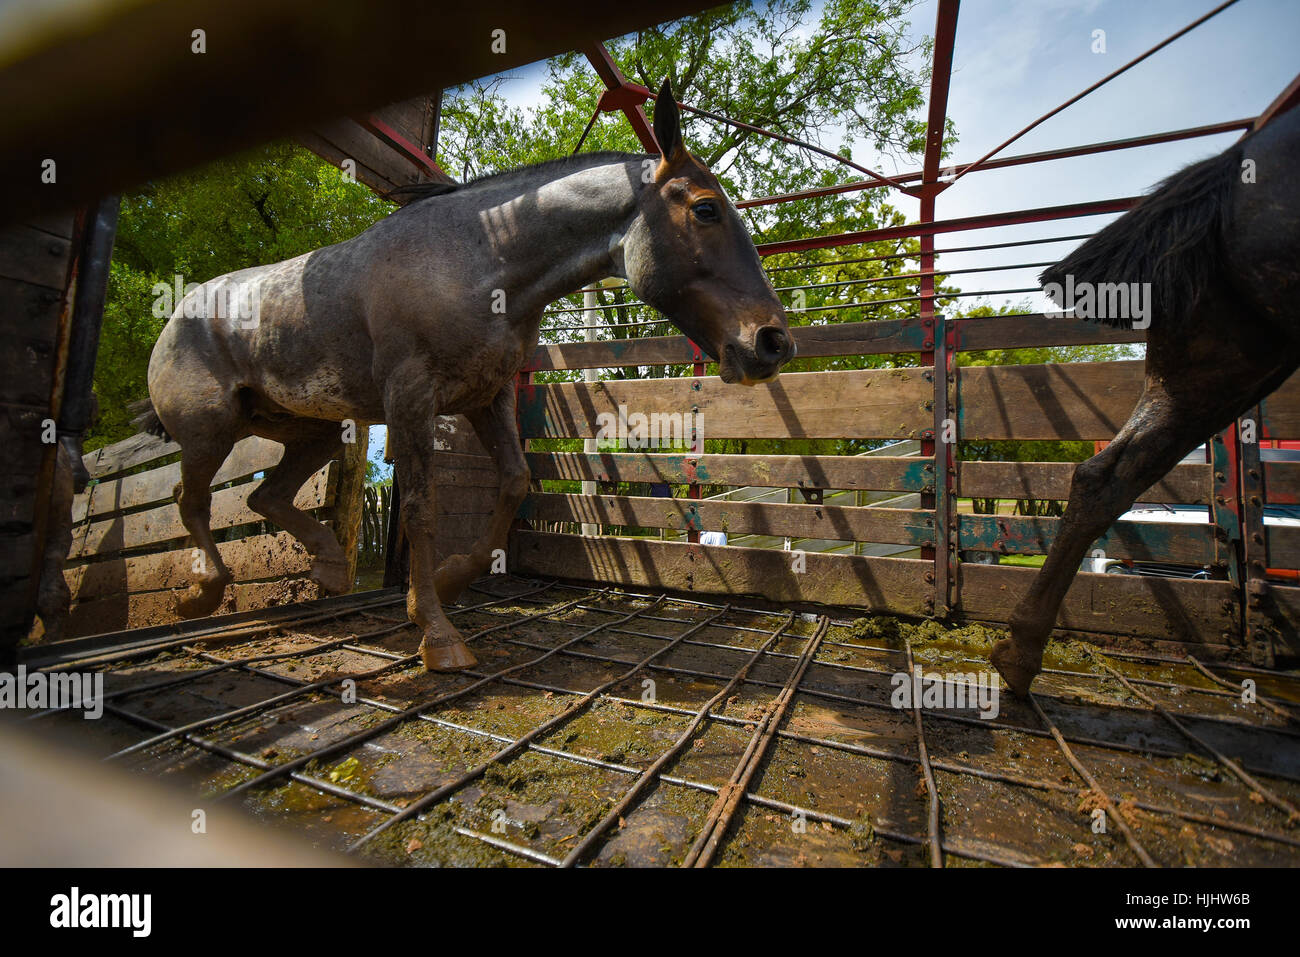 Silver dapple horses running in a horse box. - Stock Image